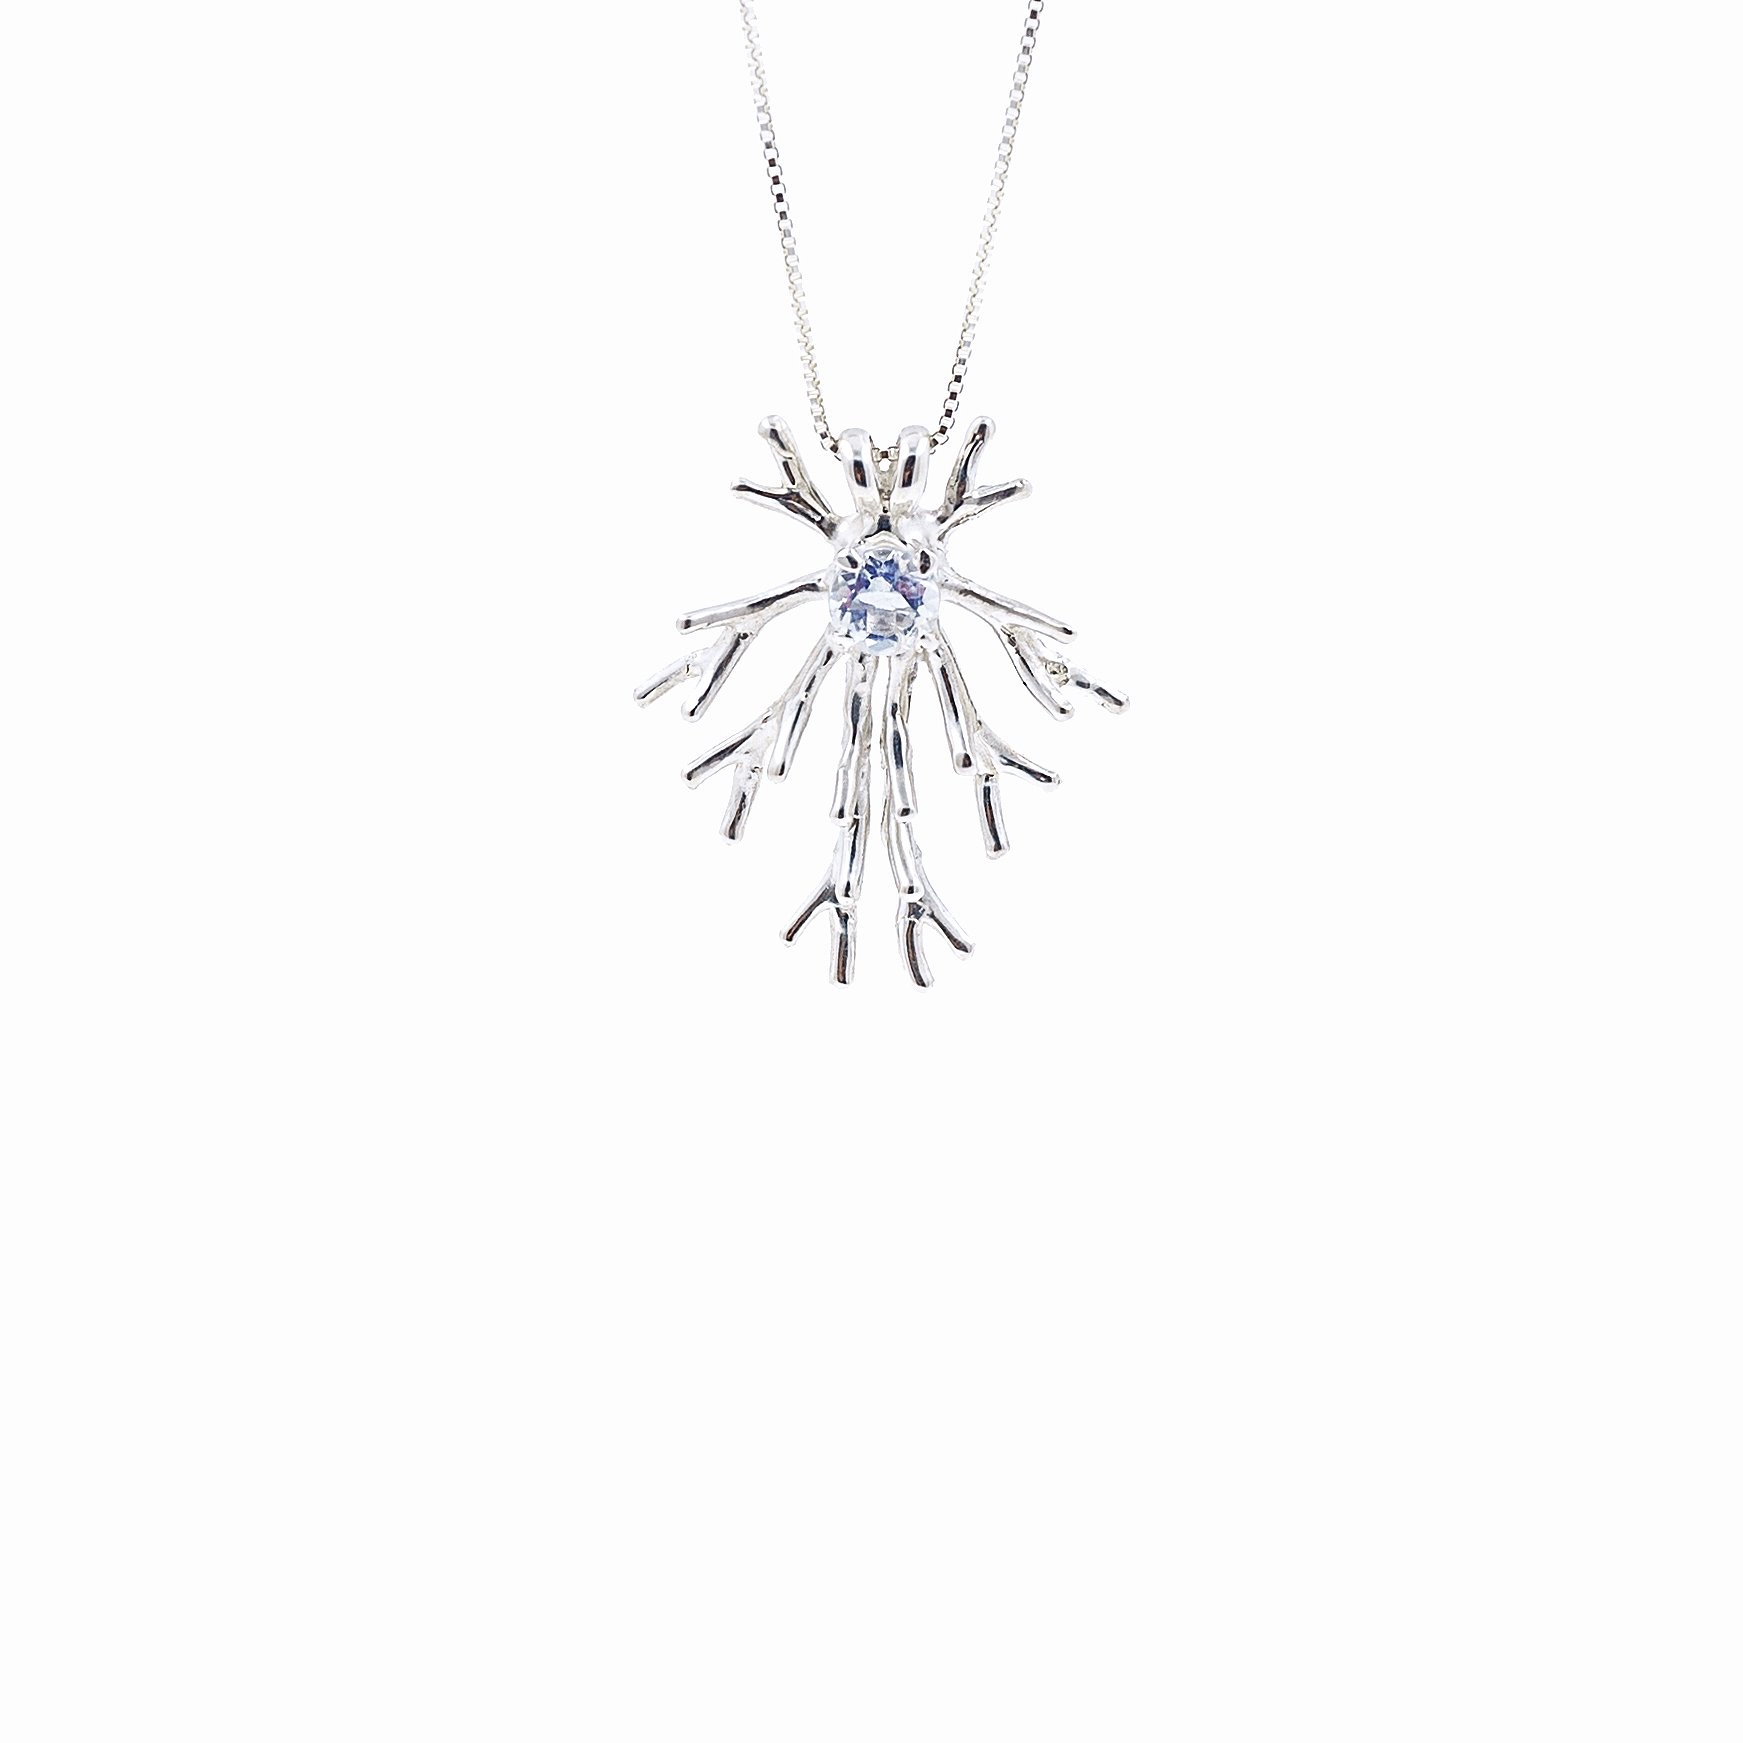 Astrocyte Pendant | Sterling silver, moonstone.